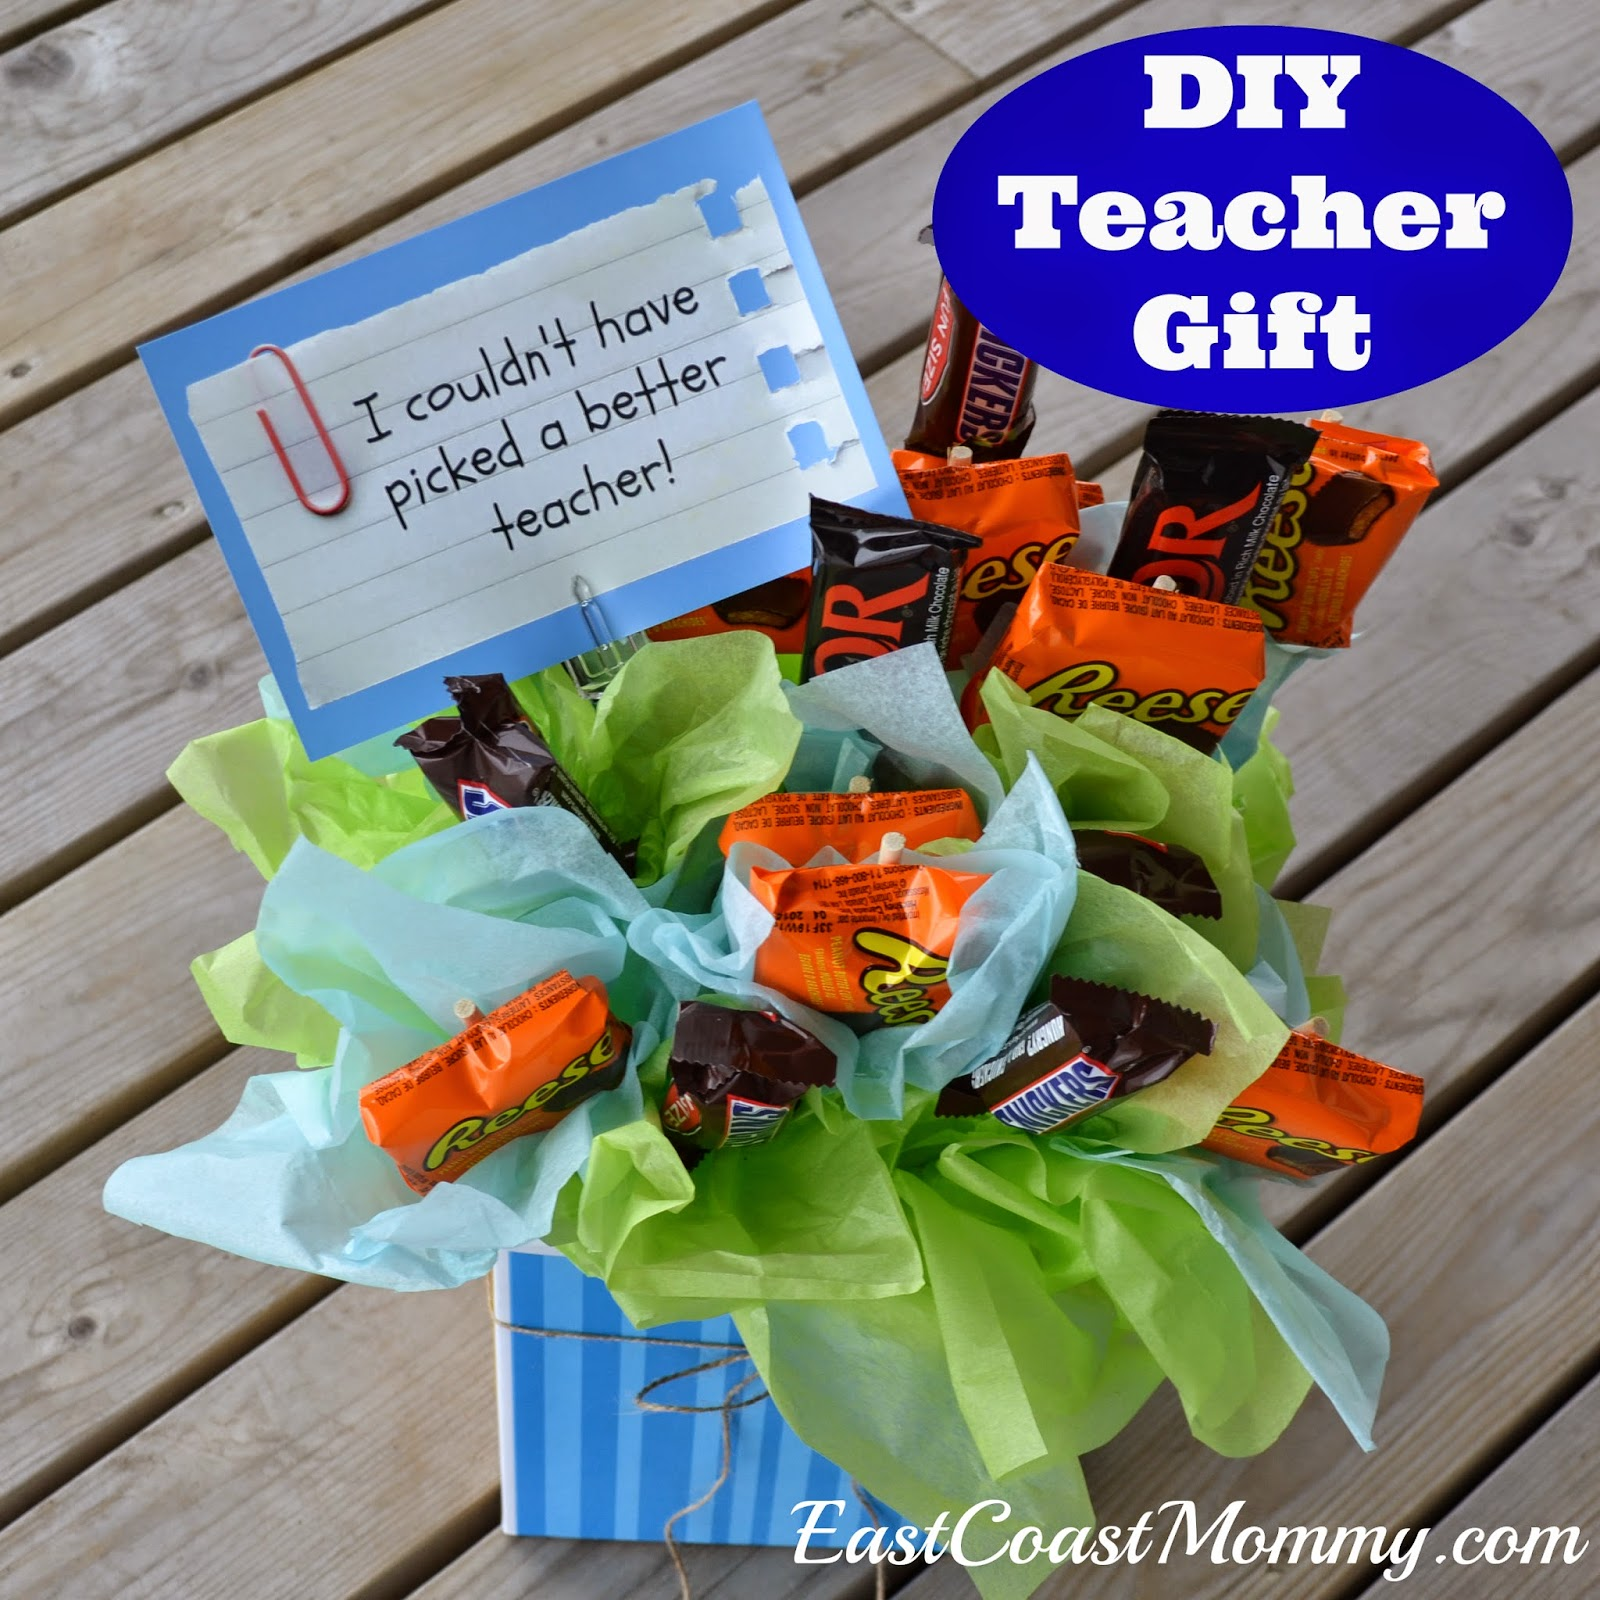 East Coast Mommy: DIY Teacher Gift {Candy Flower Bouquet}